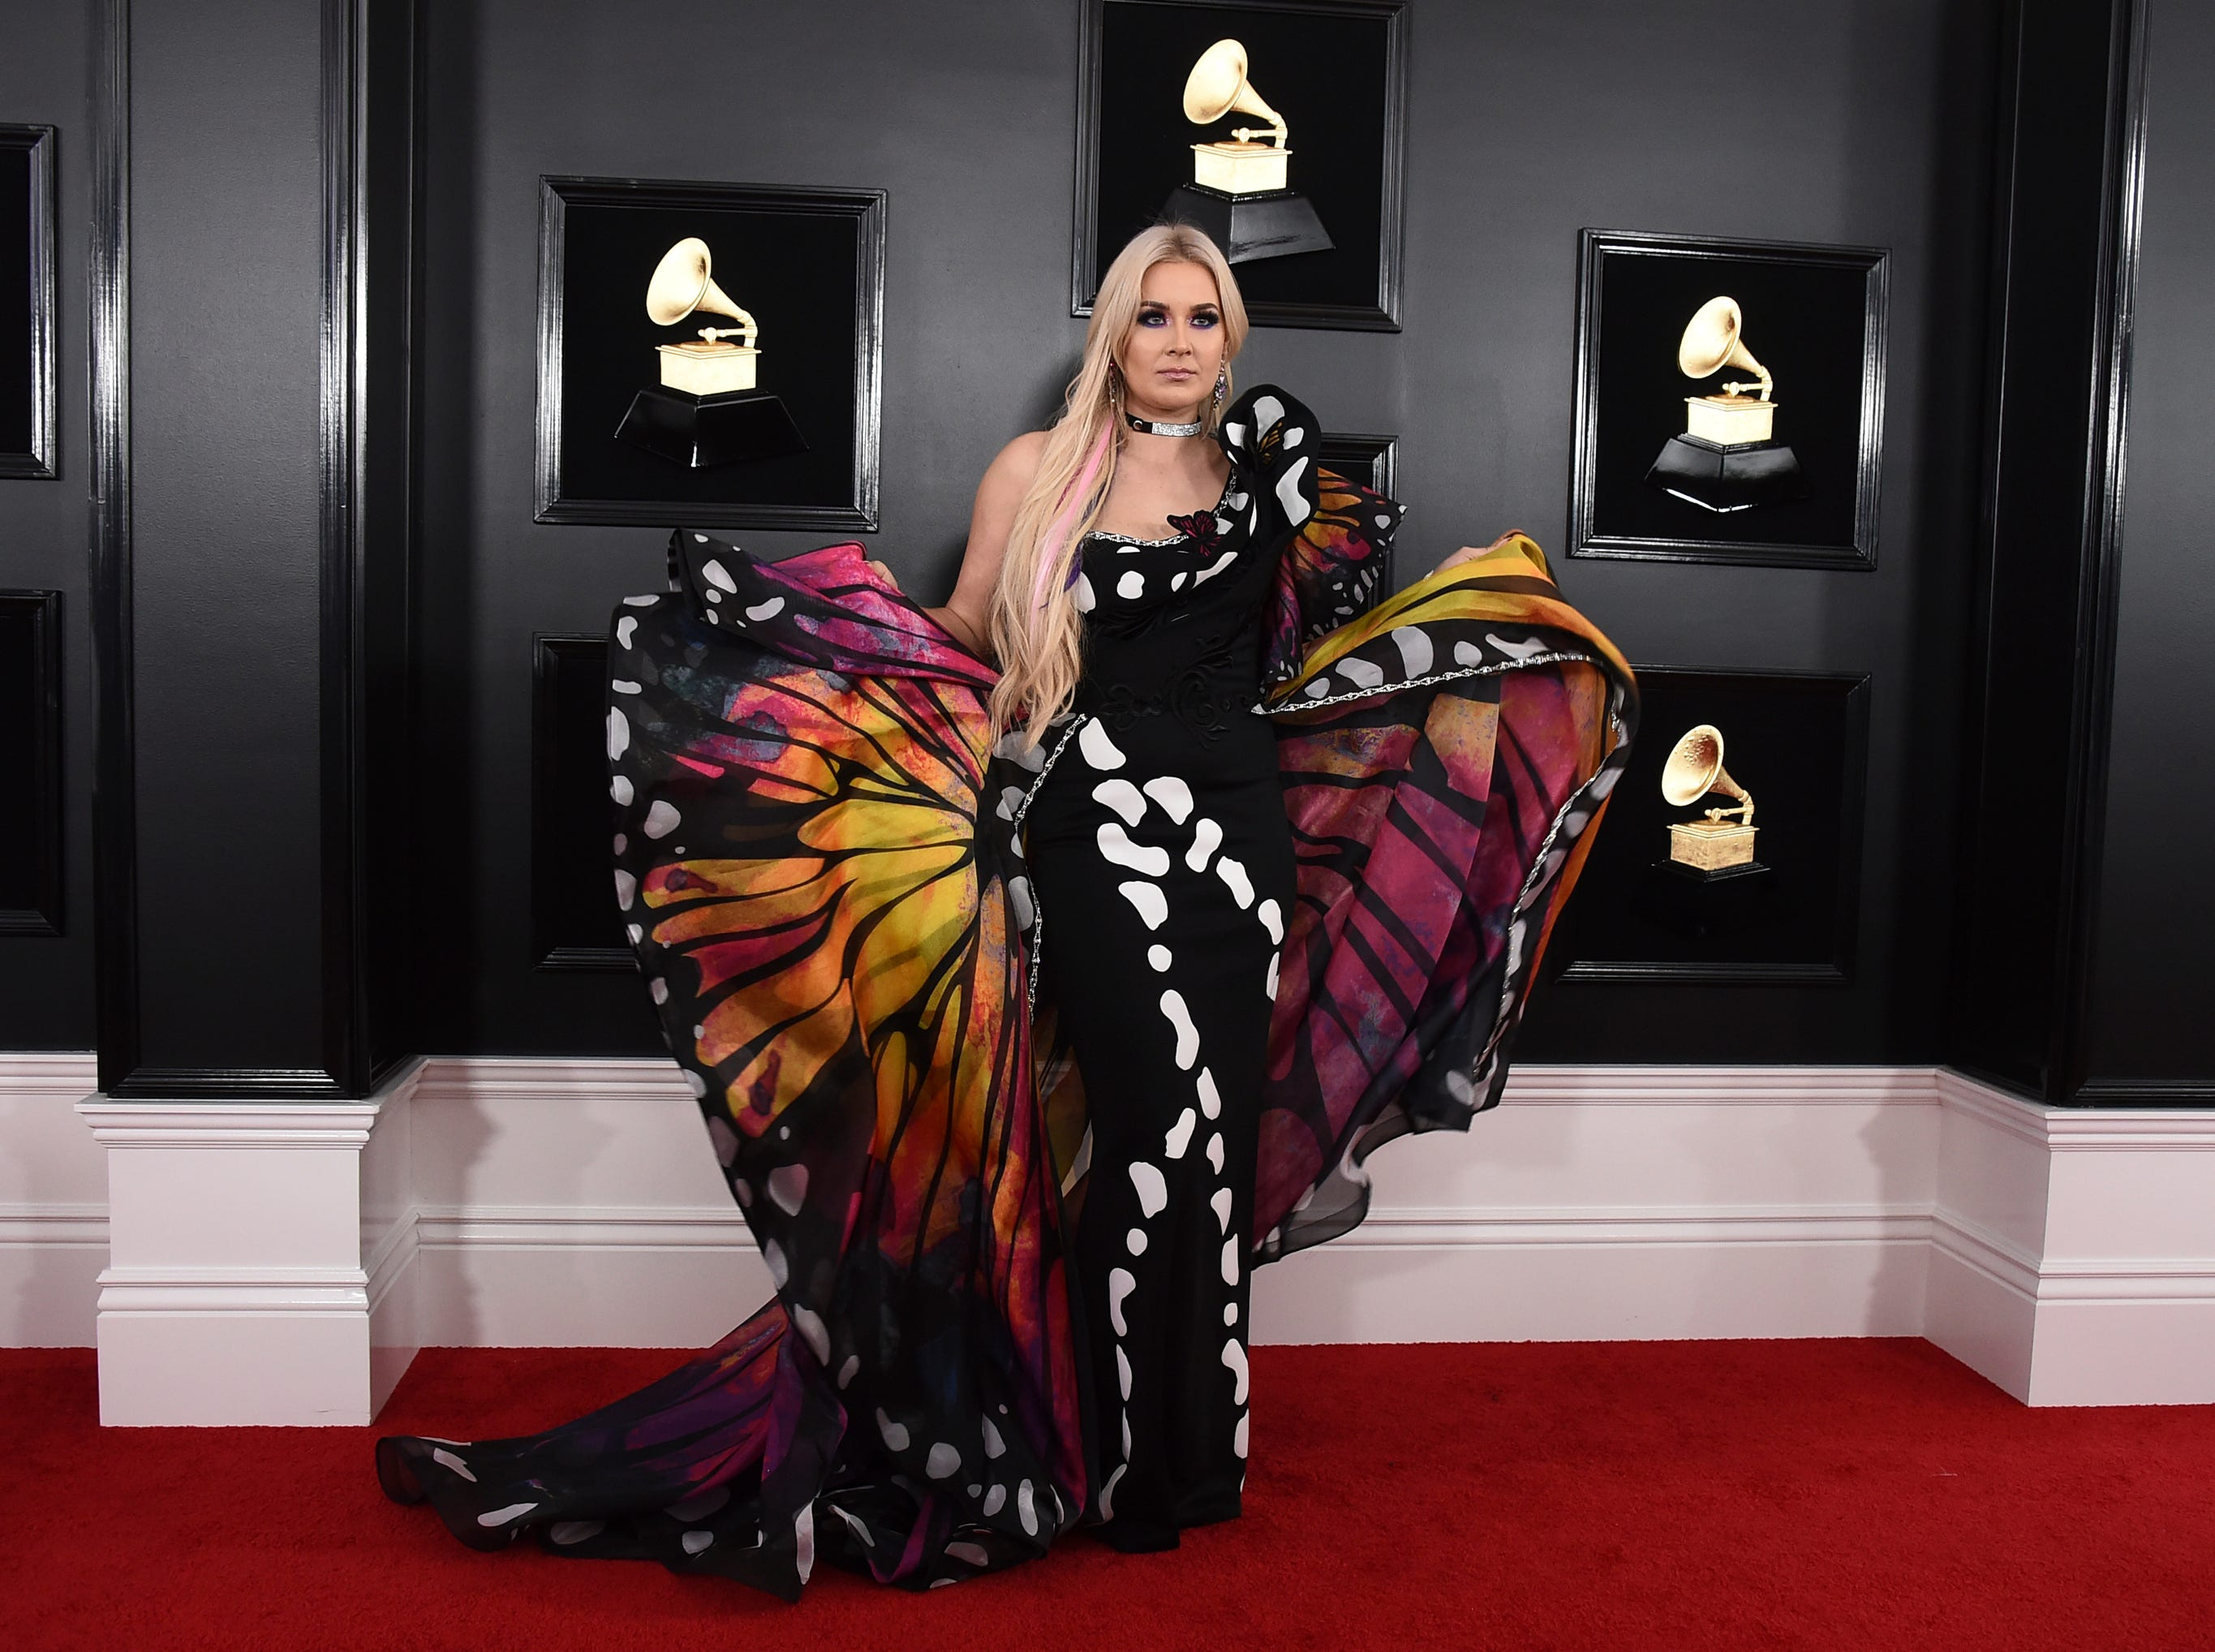 Saint Heart arrives at the 61st annual Grammy Awards.